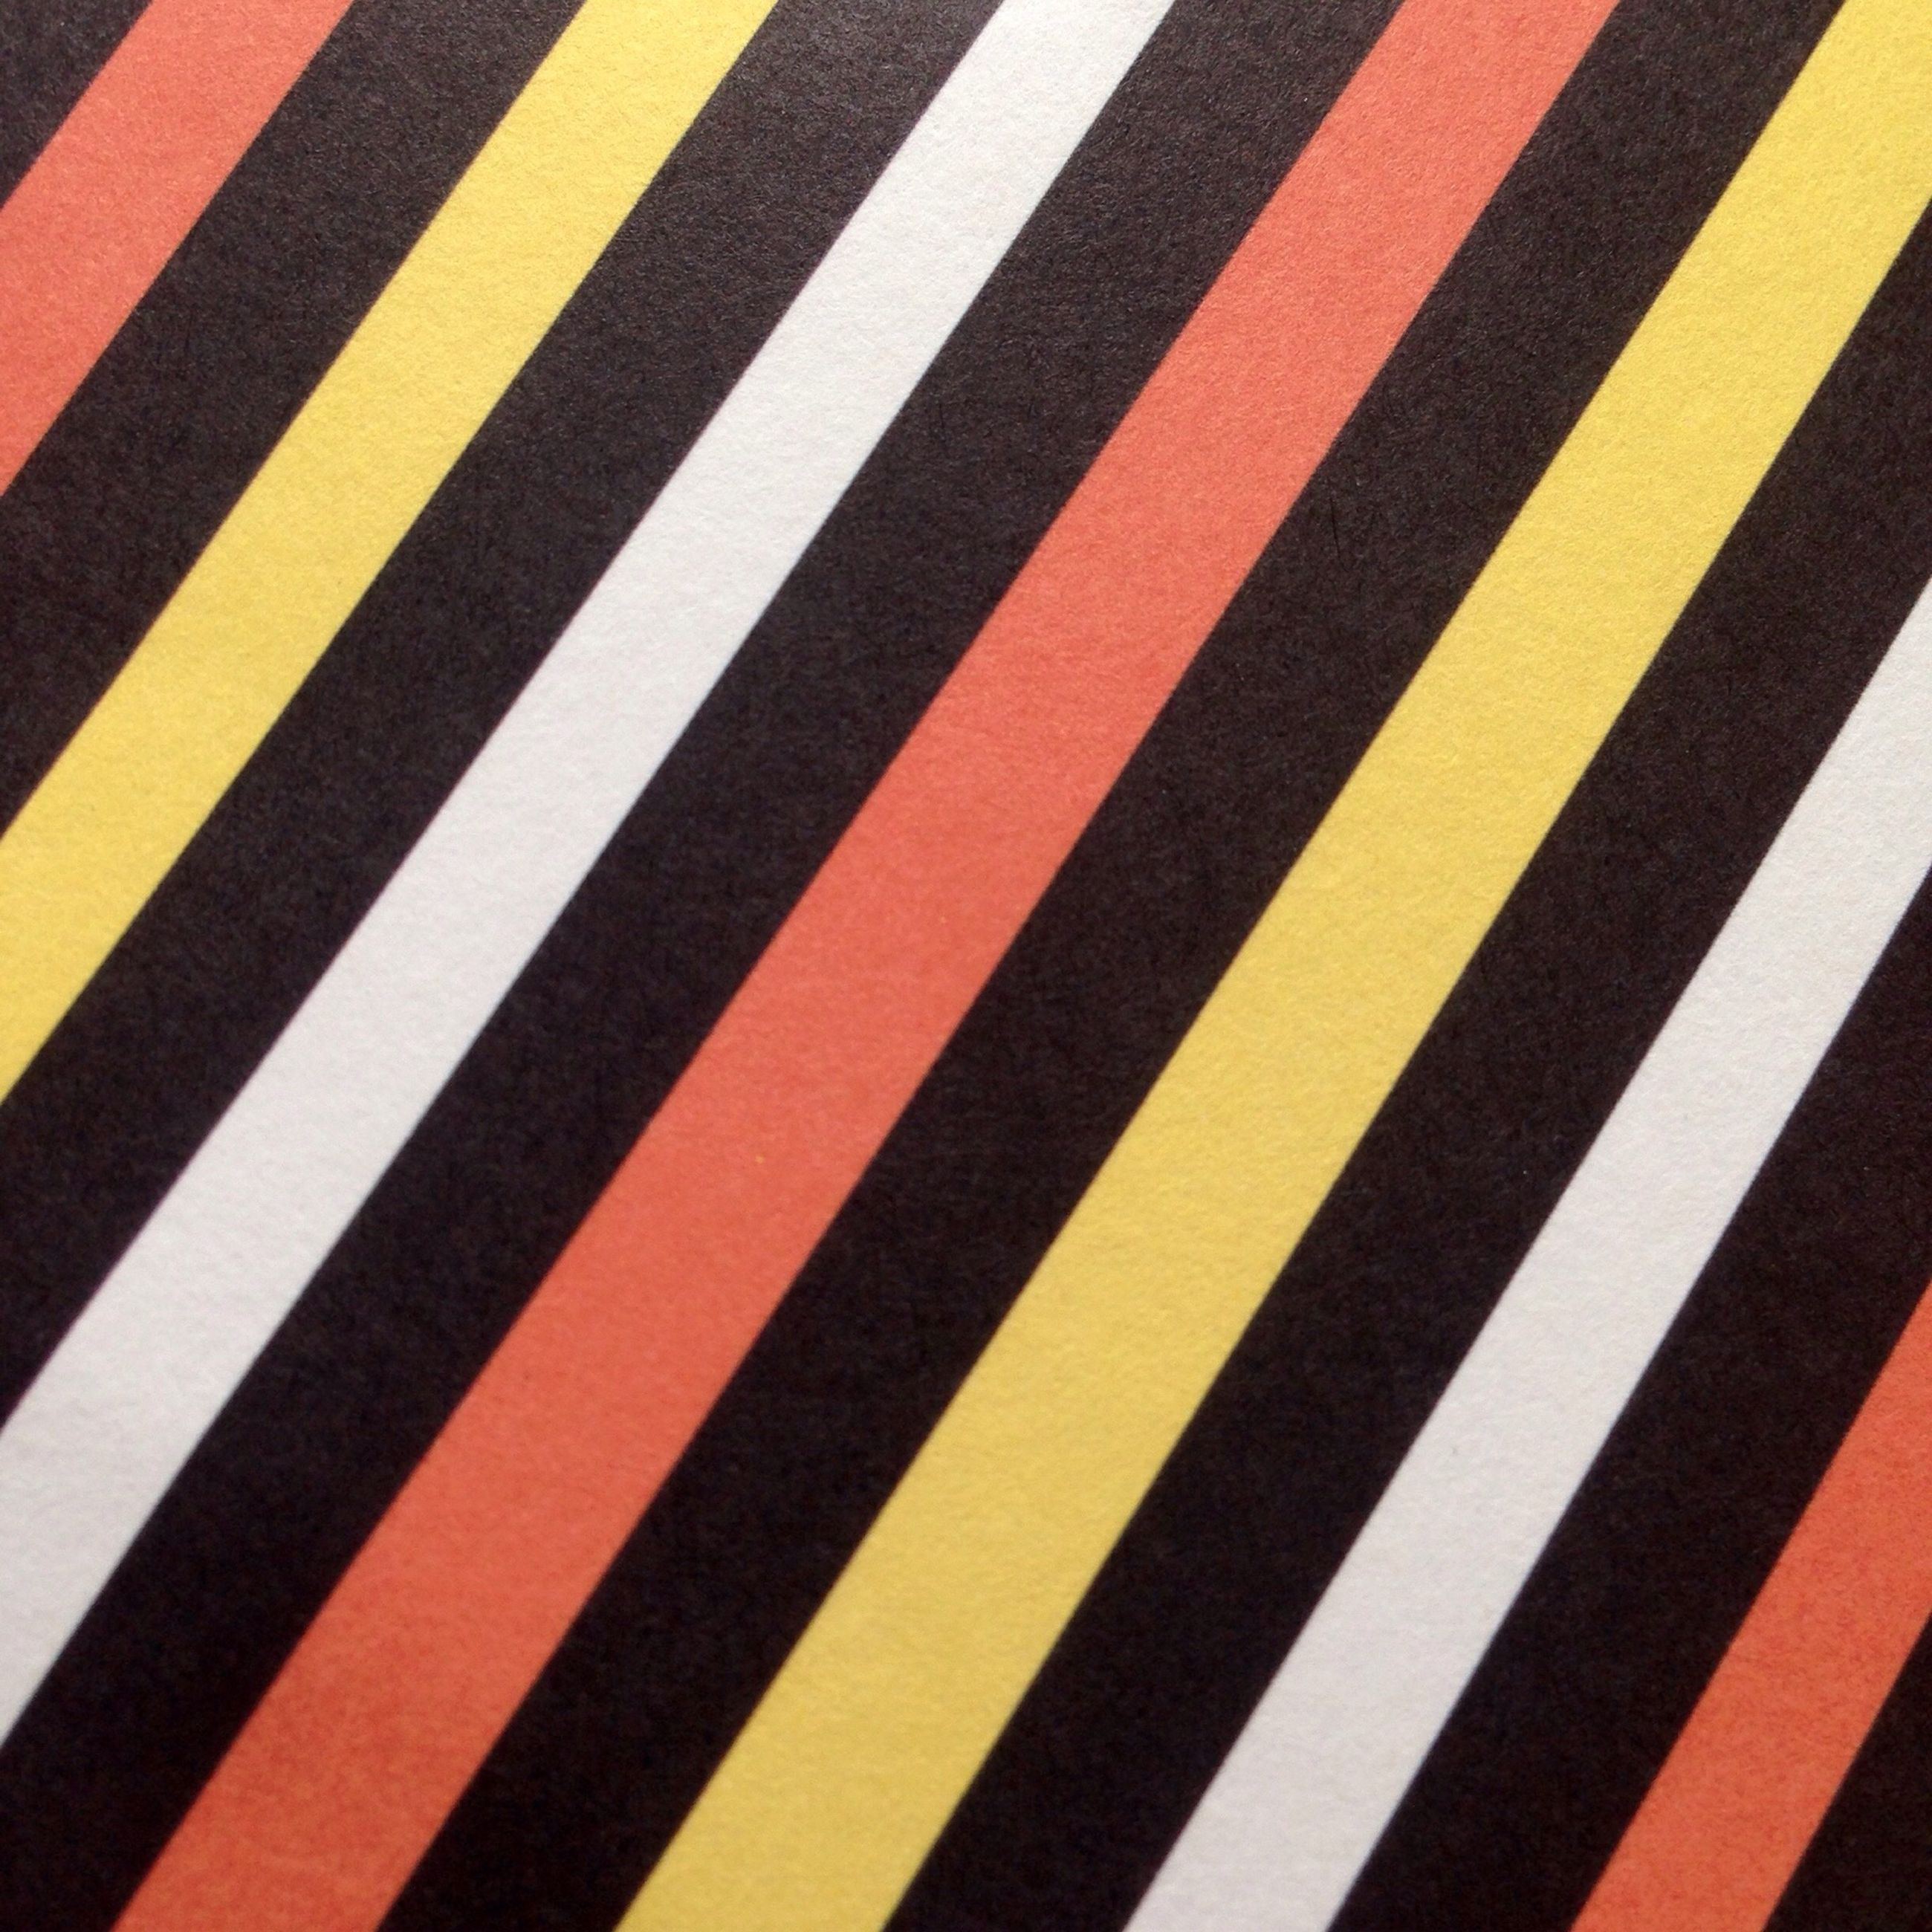 striped, patriotism, yellow, backgrounds, red, white color, full frame, abstract, cultures, flag, single object, close-up, multi colored, no people, outdoors, day